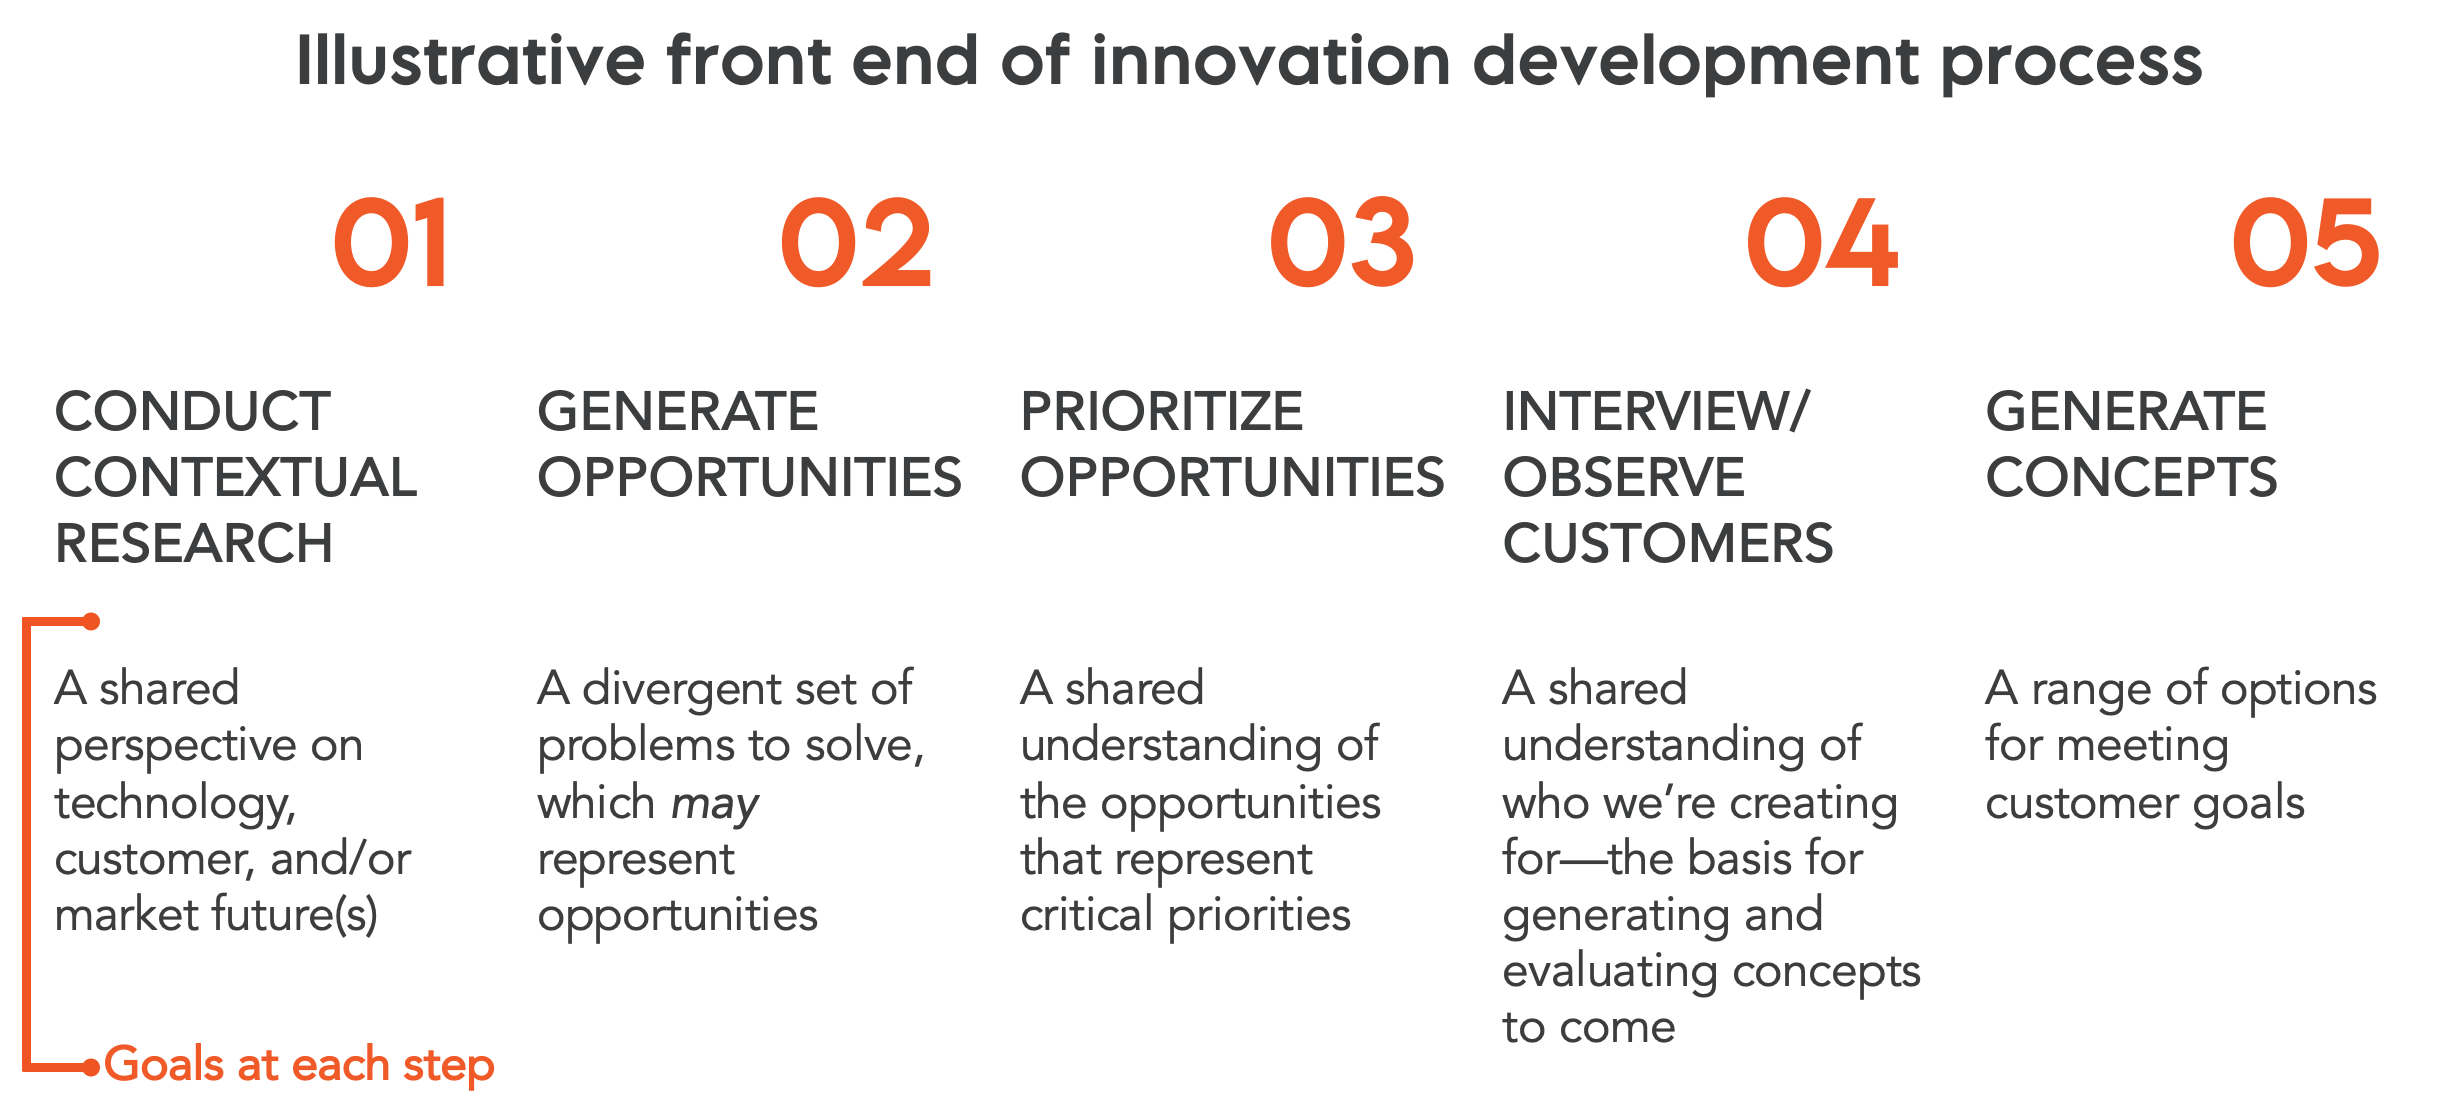 Innovation metrics are more challenging at the front end of innovation